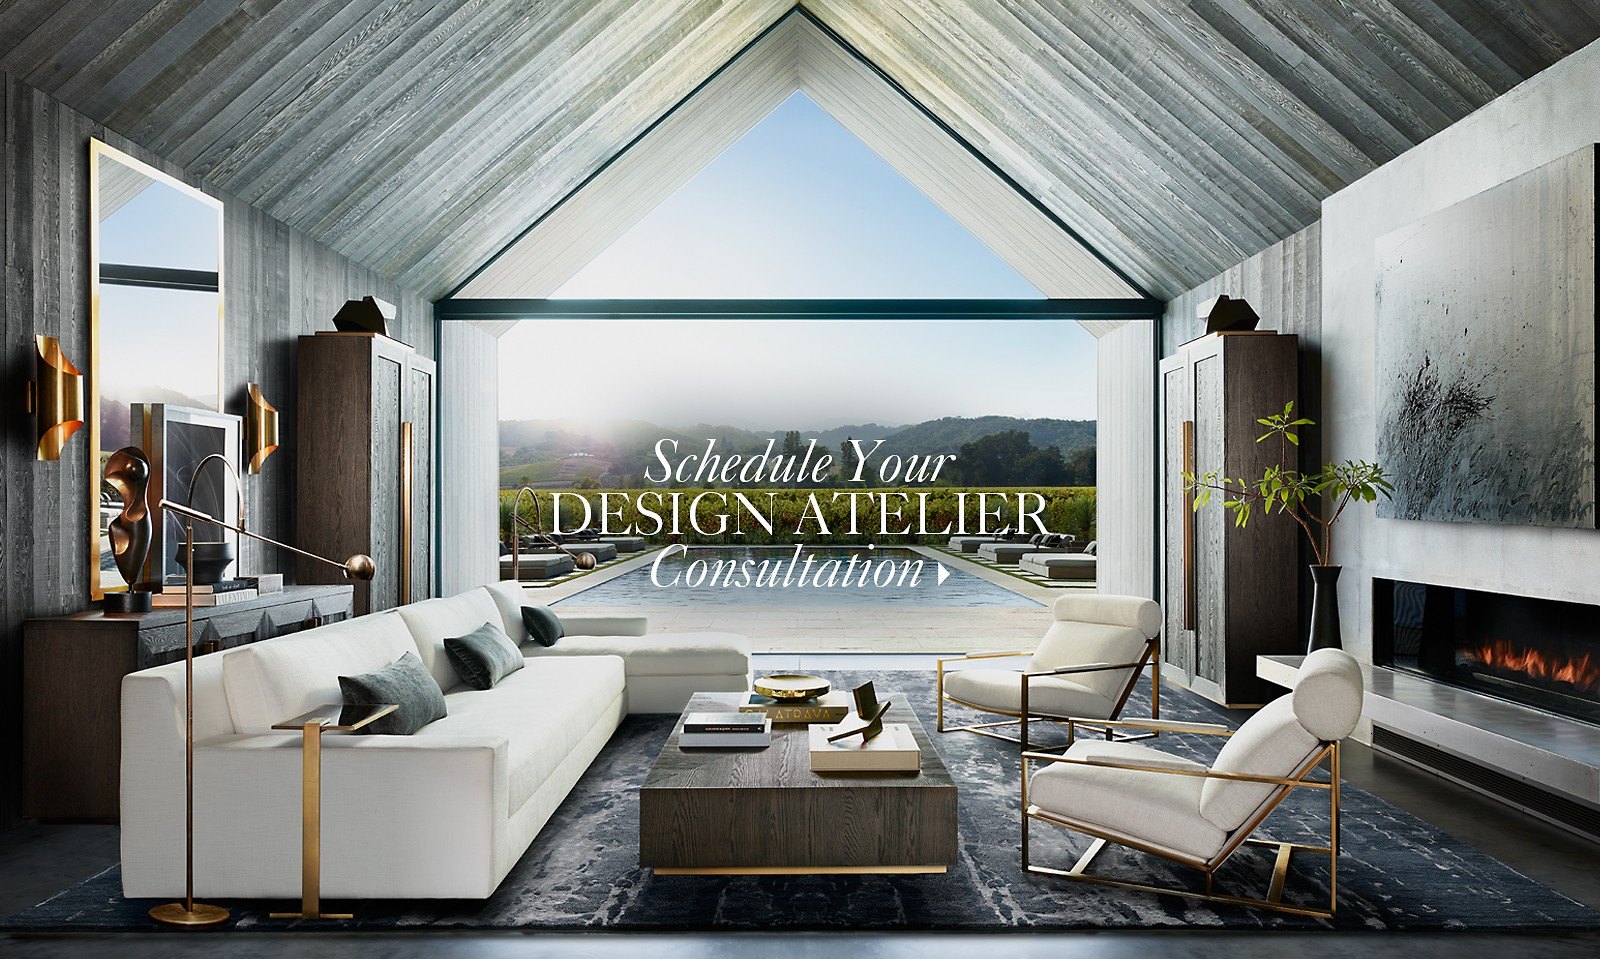 Schedule Your RH Interior Design Consultation